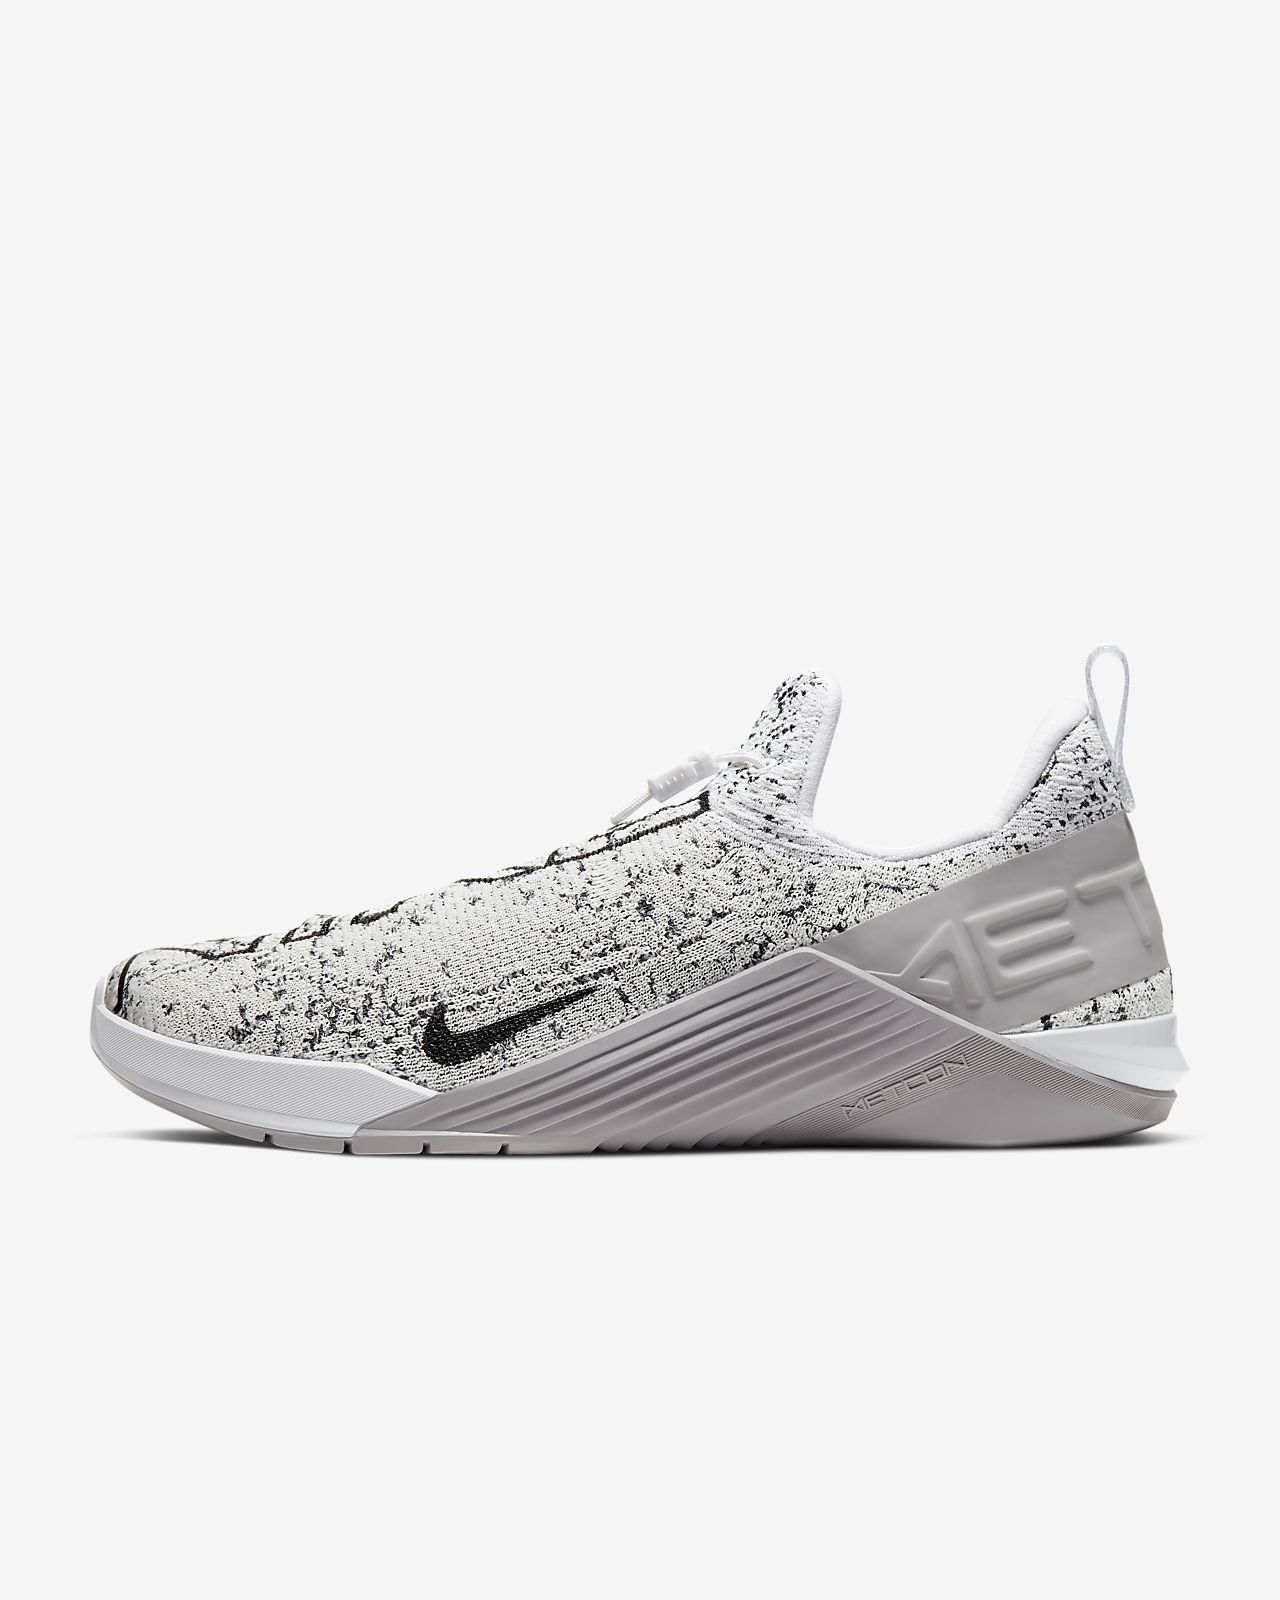 Nike React Metcon Men's Training Shoe